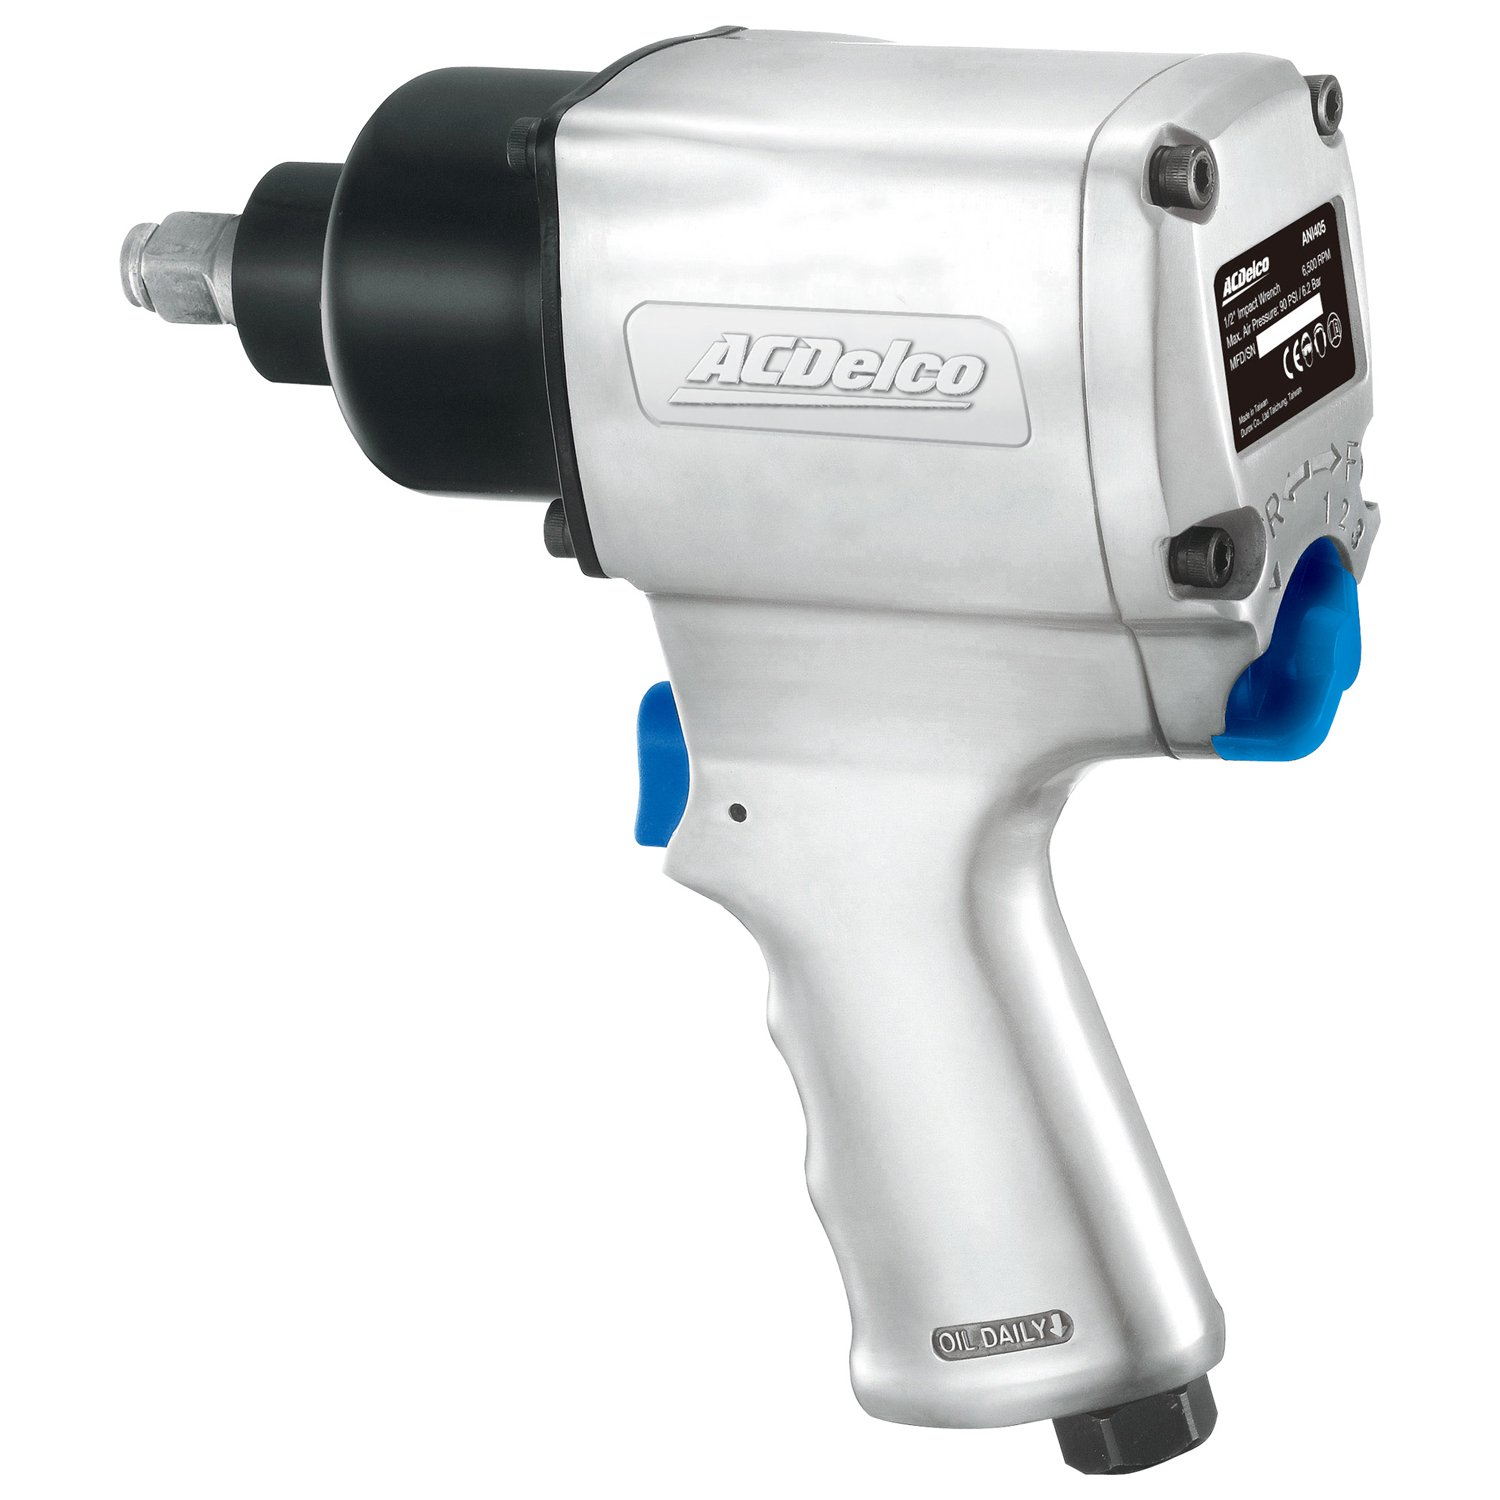 ACDelco ANI405 Heavy Duty Twin Hammer 1/2 Air Impact Wrench Pneumatic Tools